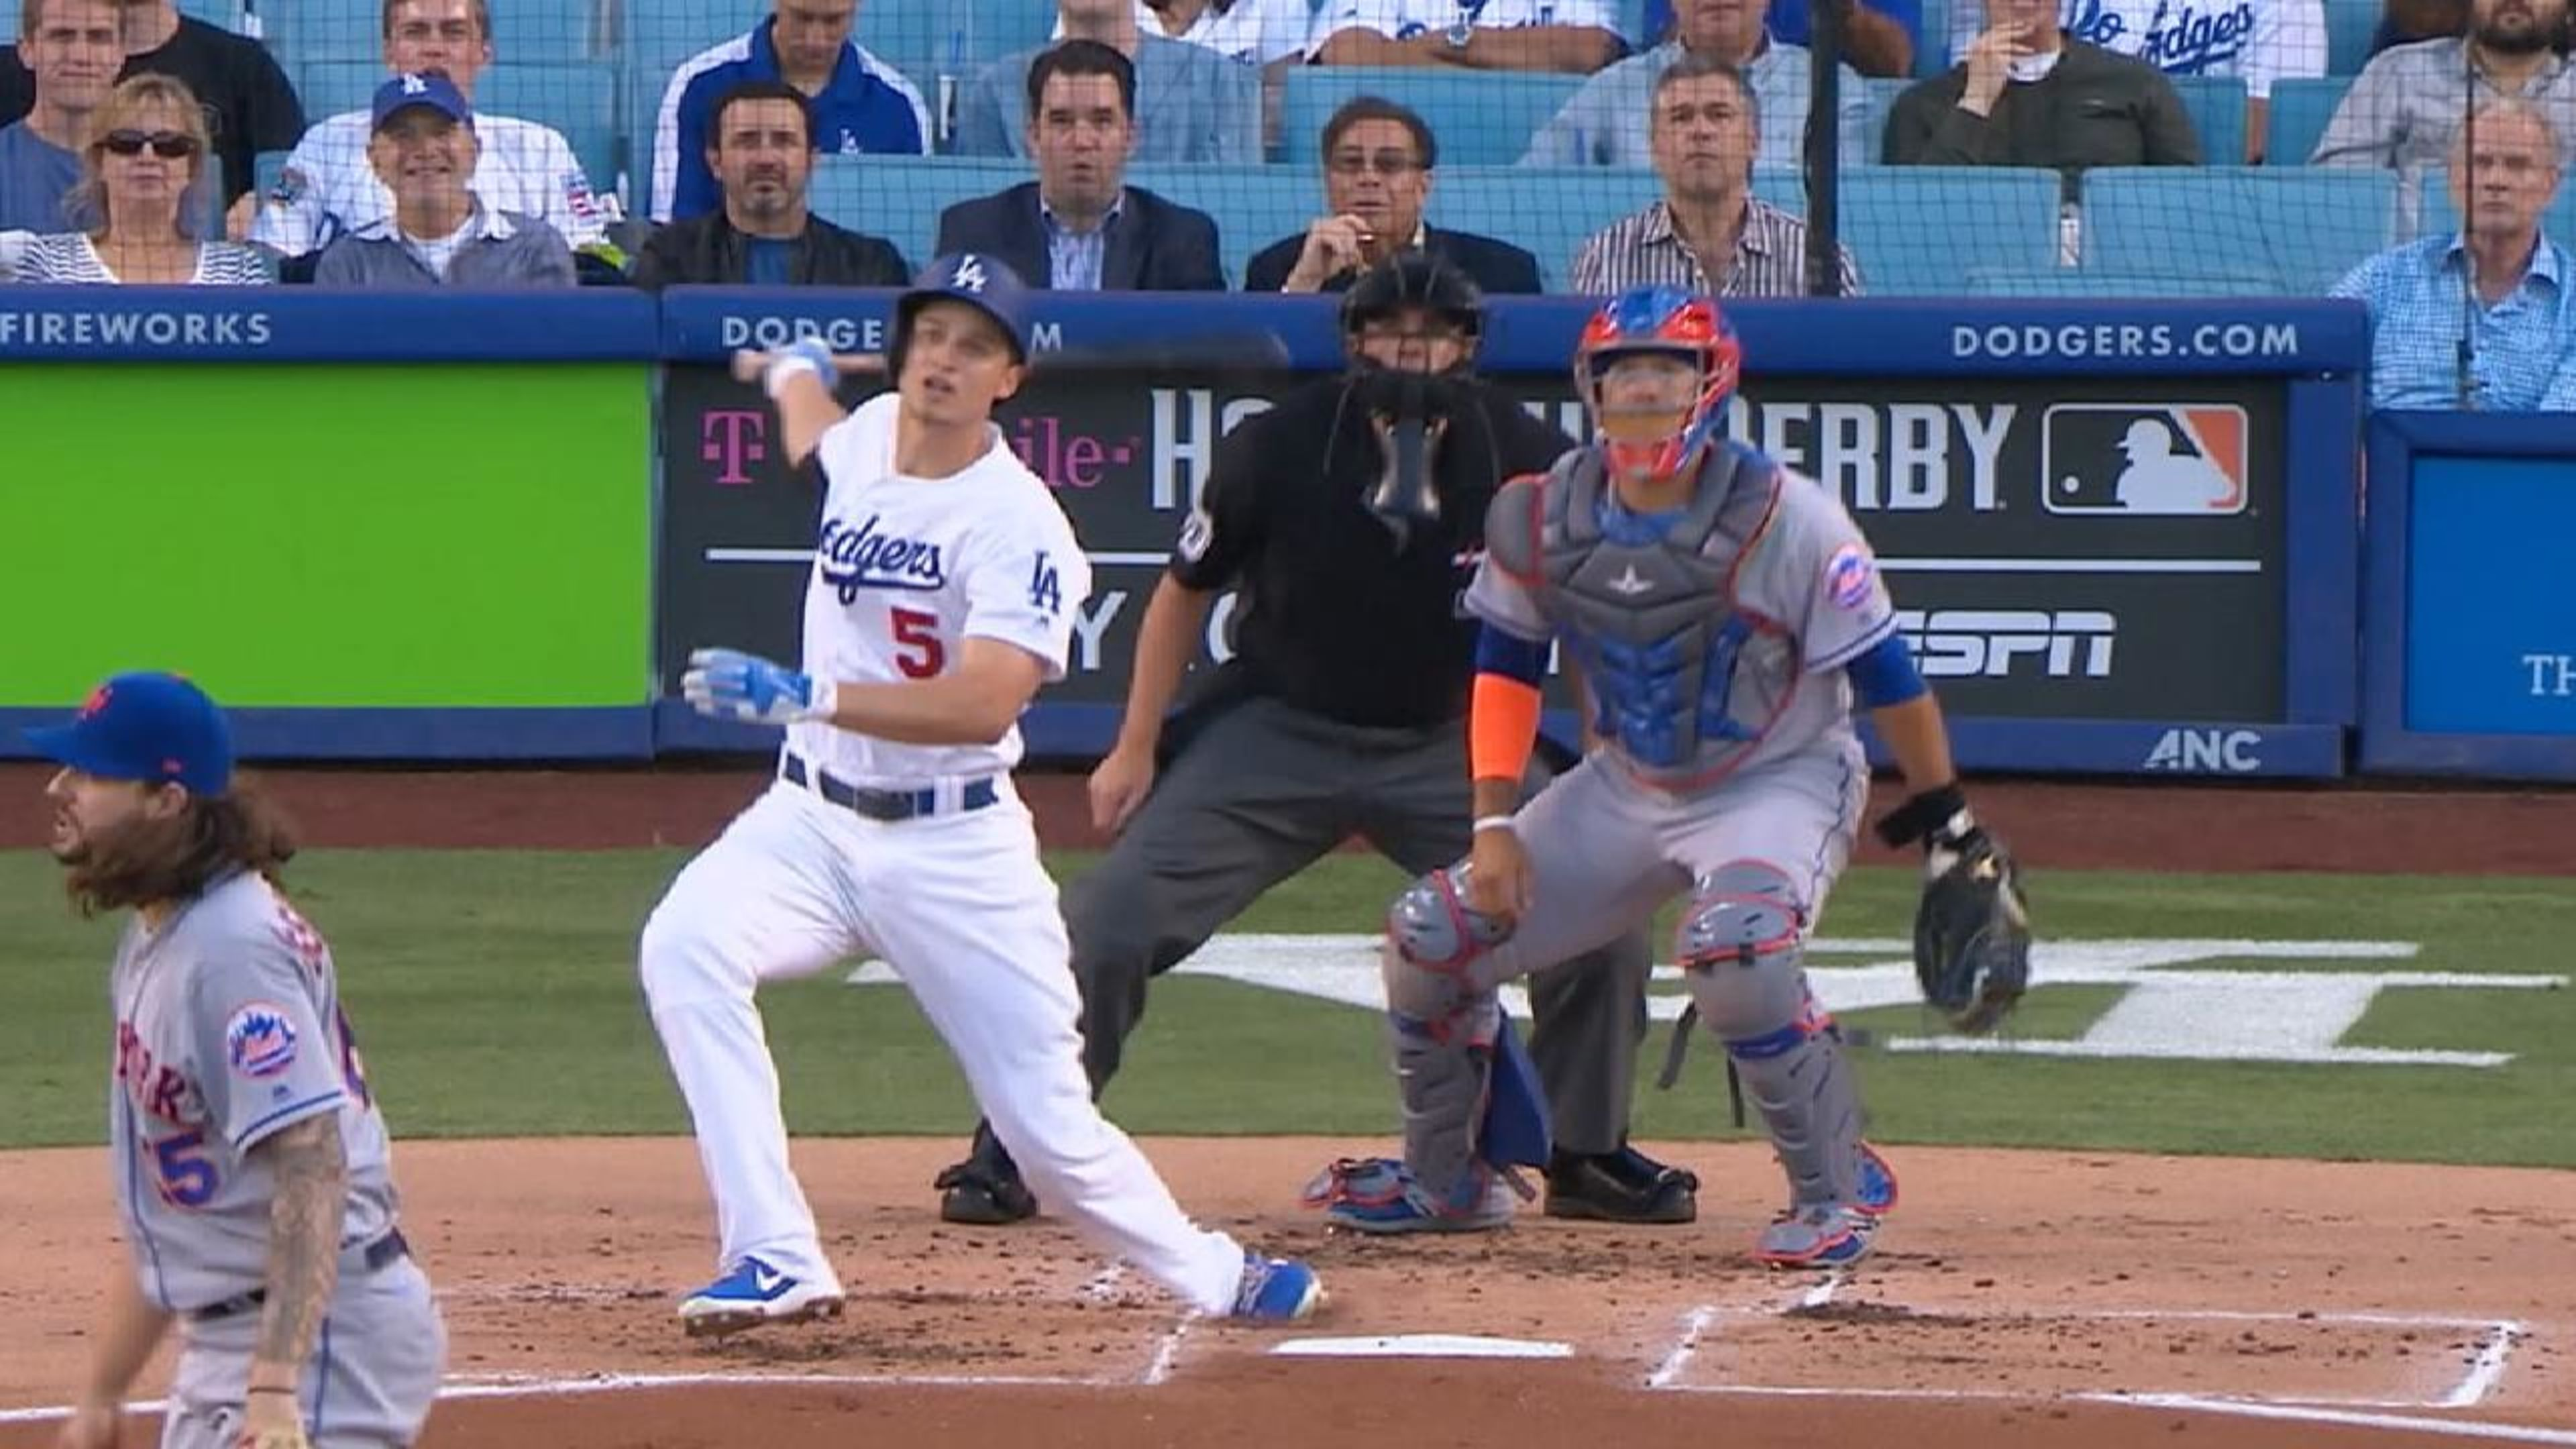 c5bb271e0d4 Corey Seager feels good after playing at SS